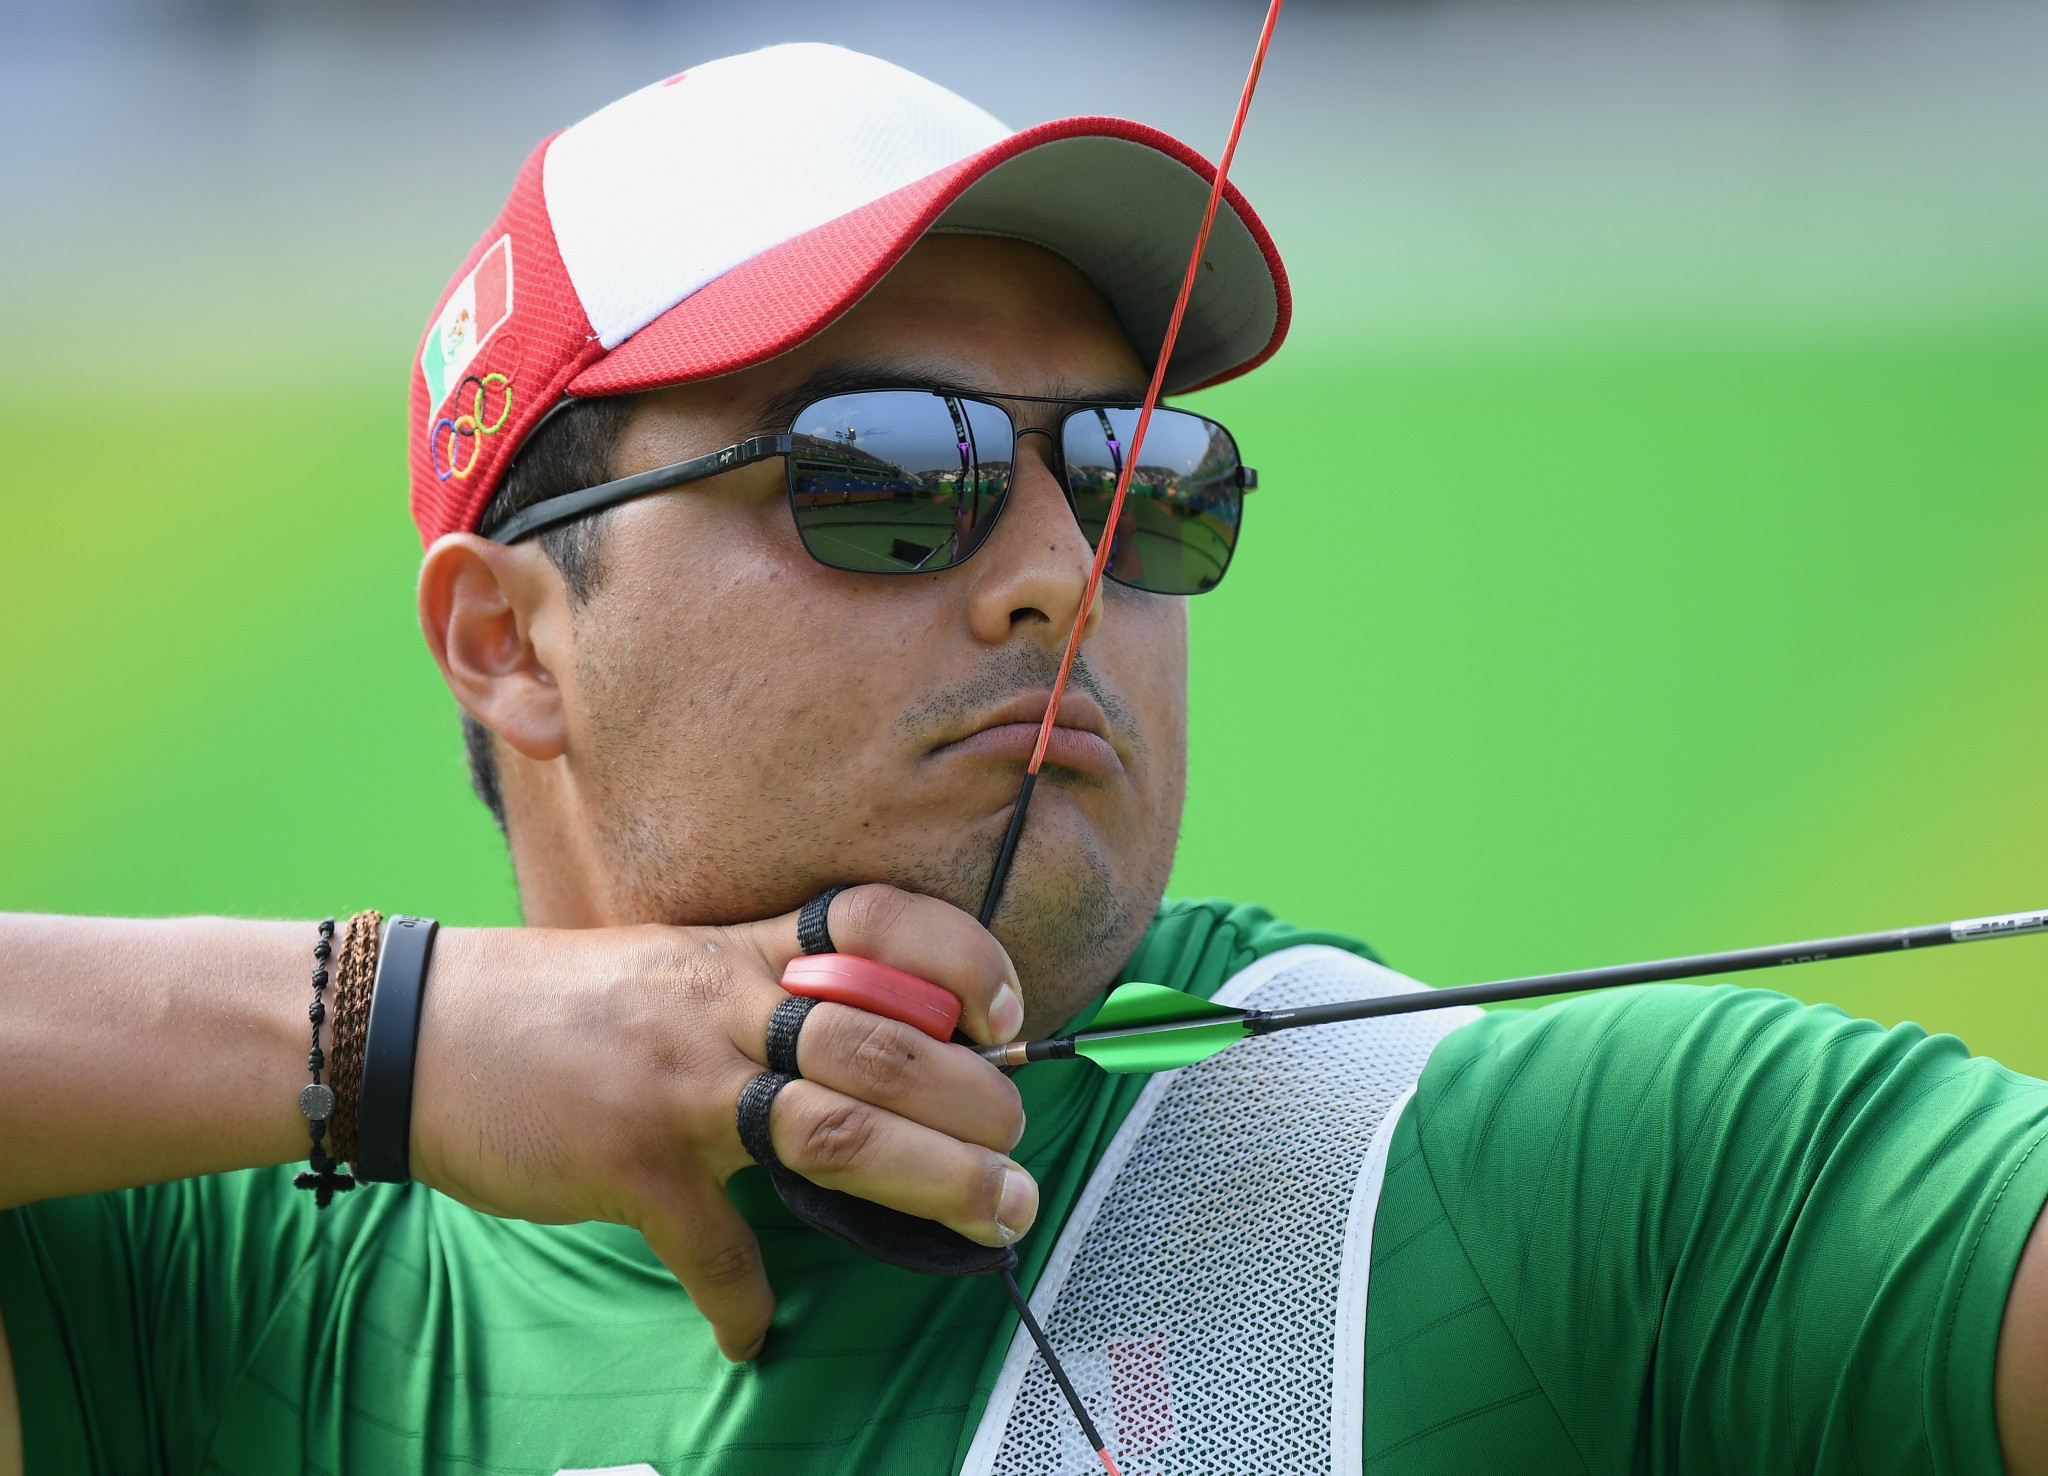 Ellison exits early as Boardman wins surprise recurve gold at Pan American Archery Championships